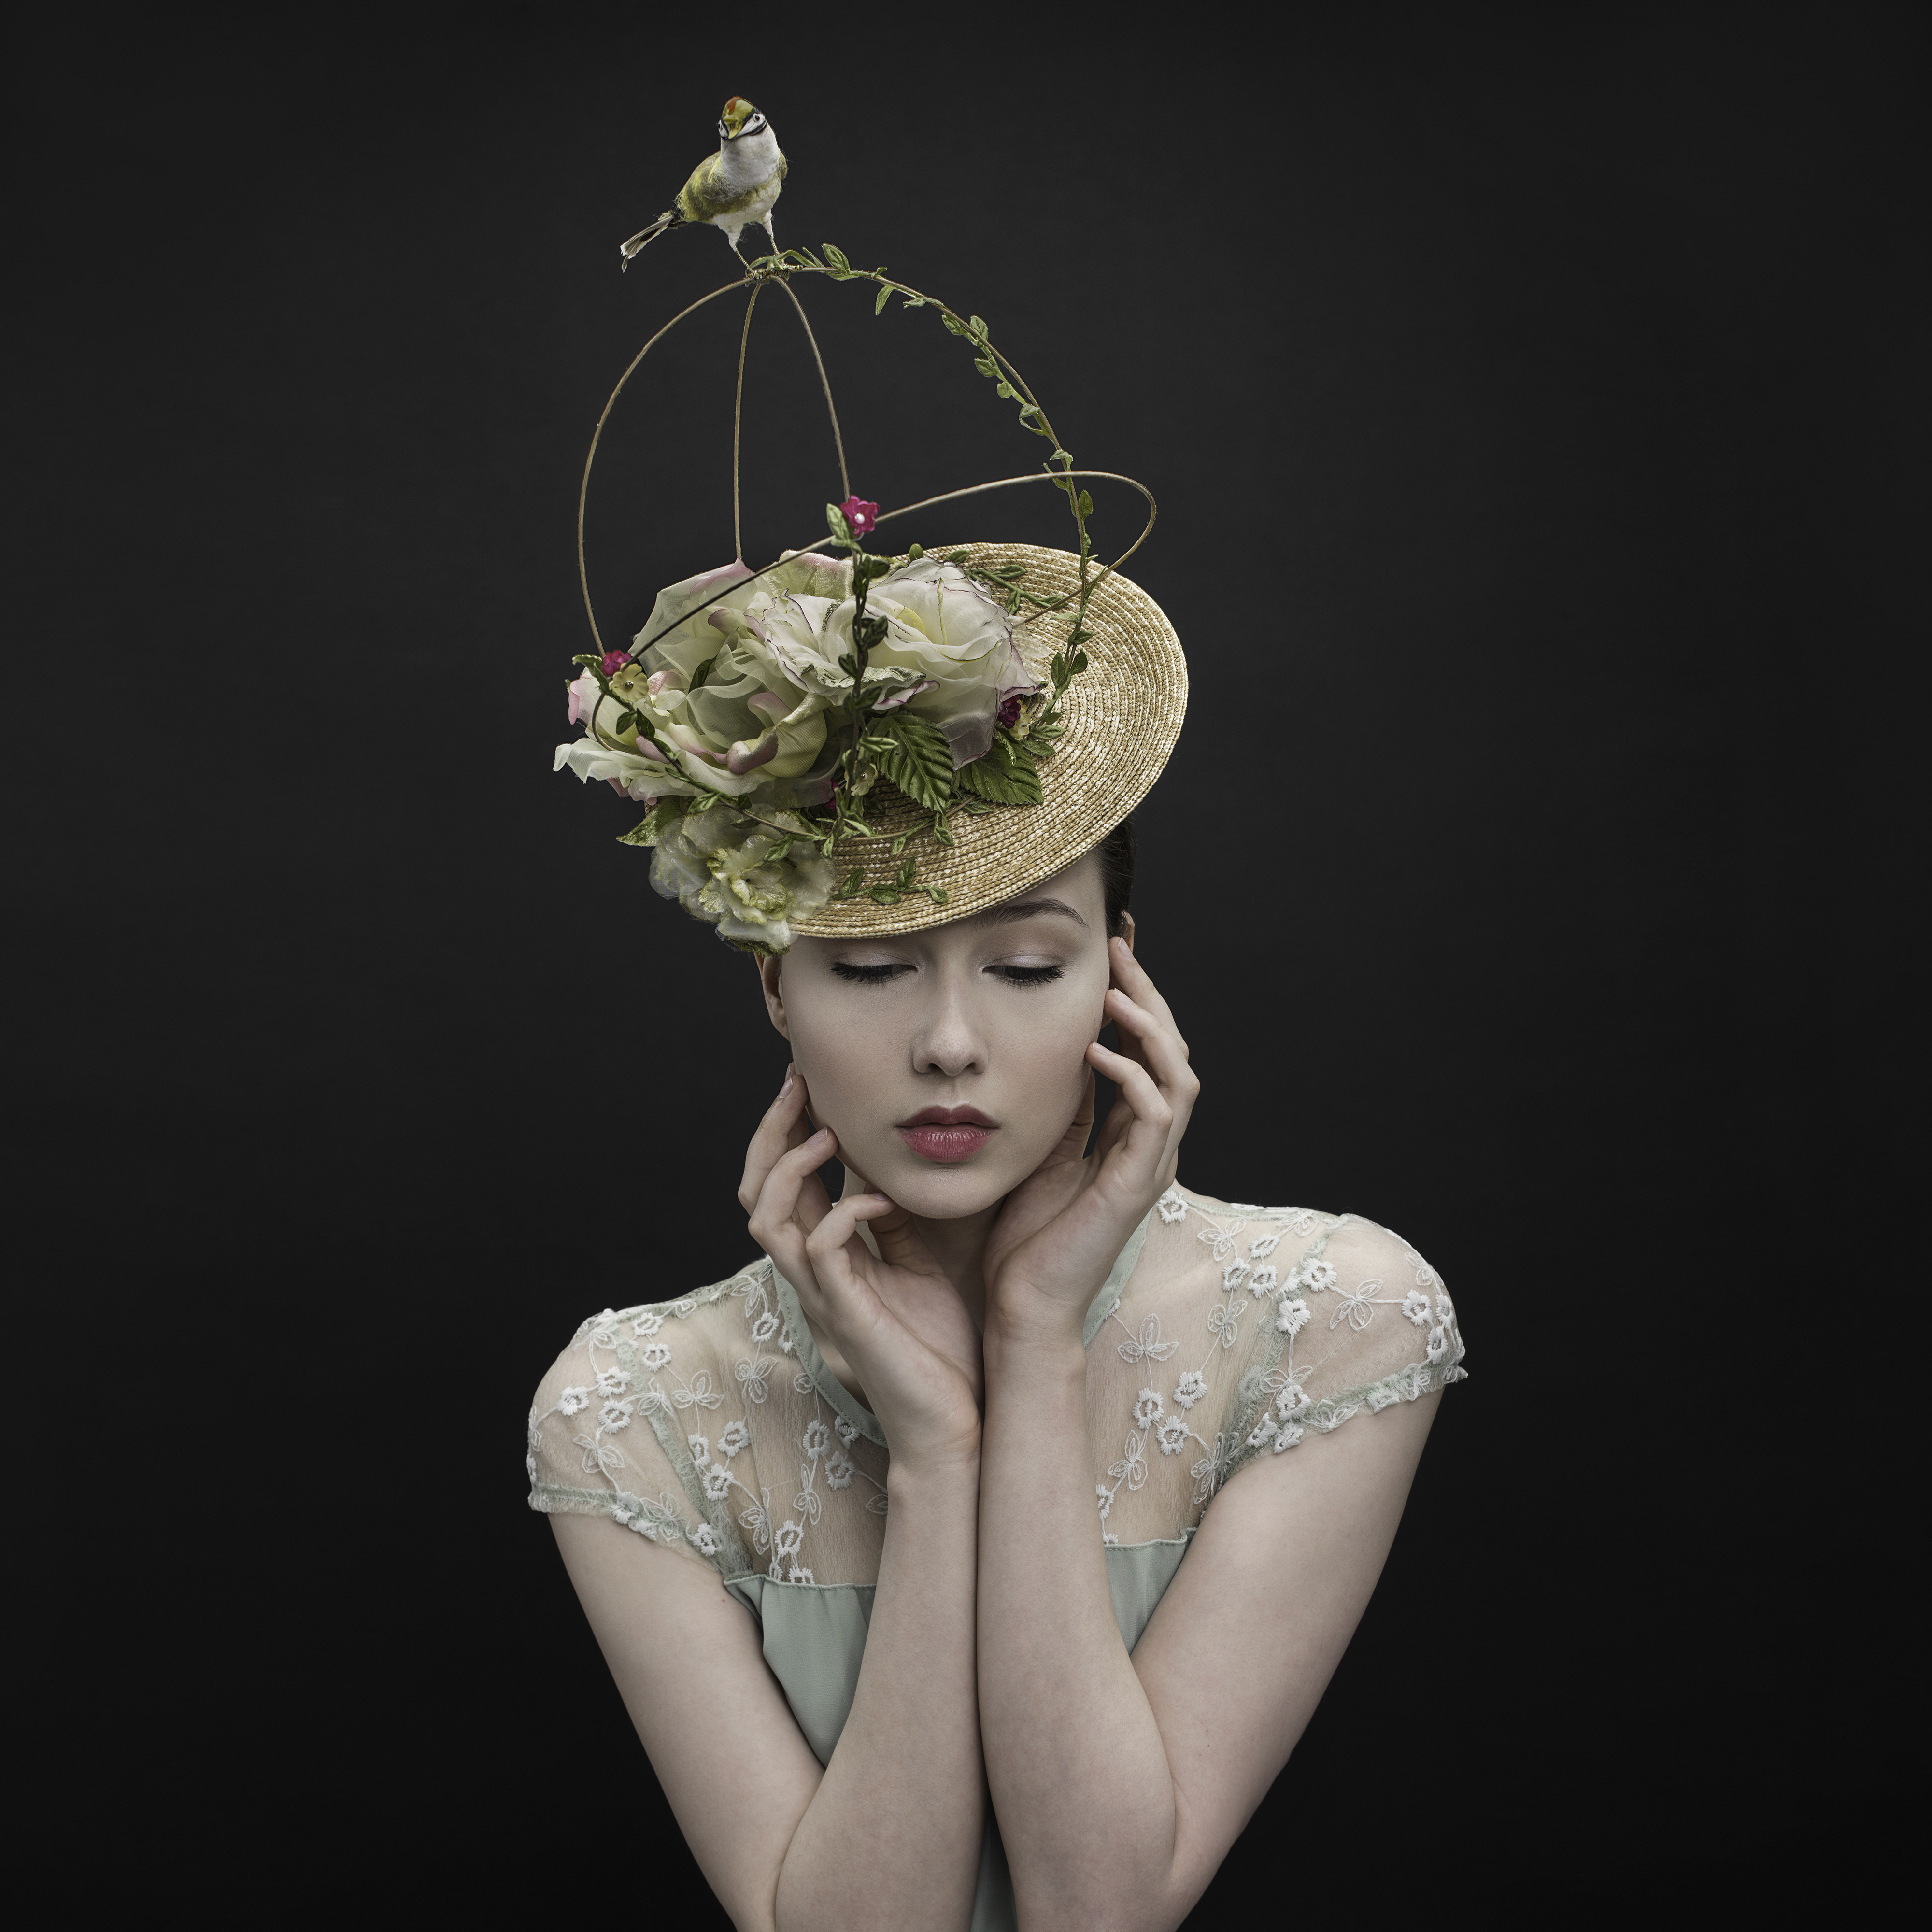 braided wheat straw hat trimmed with wire and silk flowers